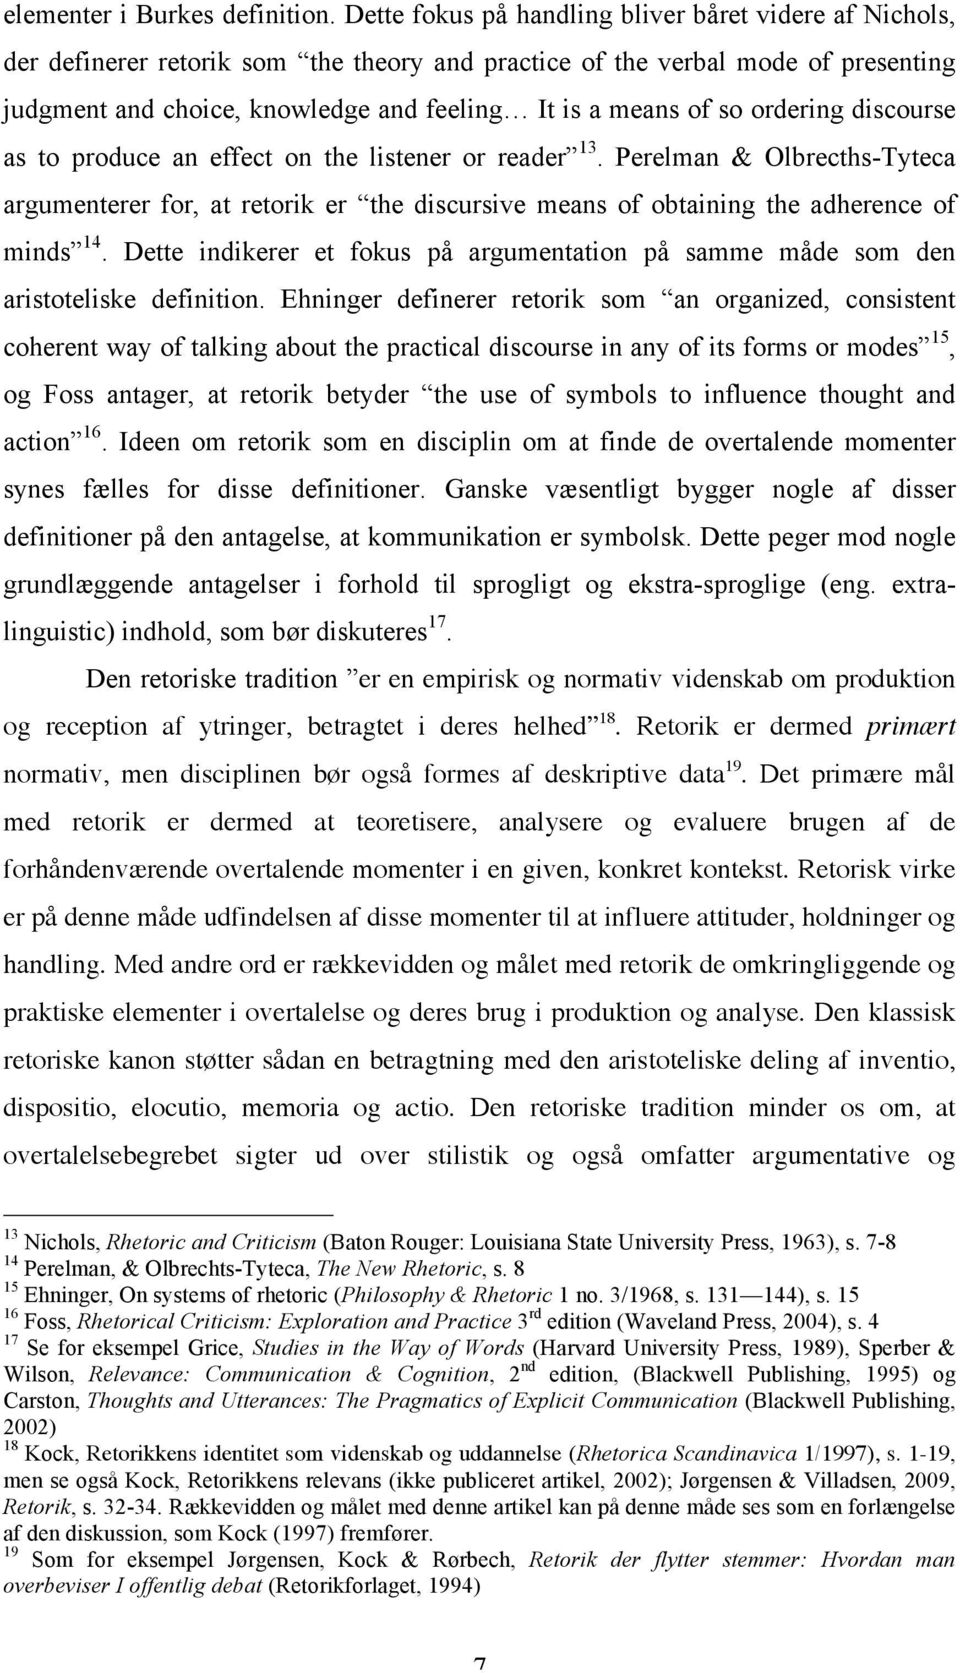 so ordering discourse as to produce an effect on the listener or reader 13. Perelman & Olbrecths-Tyteca argumenterer for, at retorik er the discursive means of obtaining the adherence of minds 14.